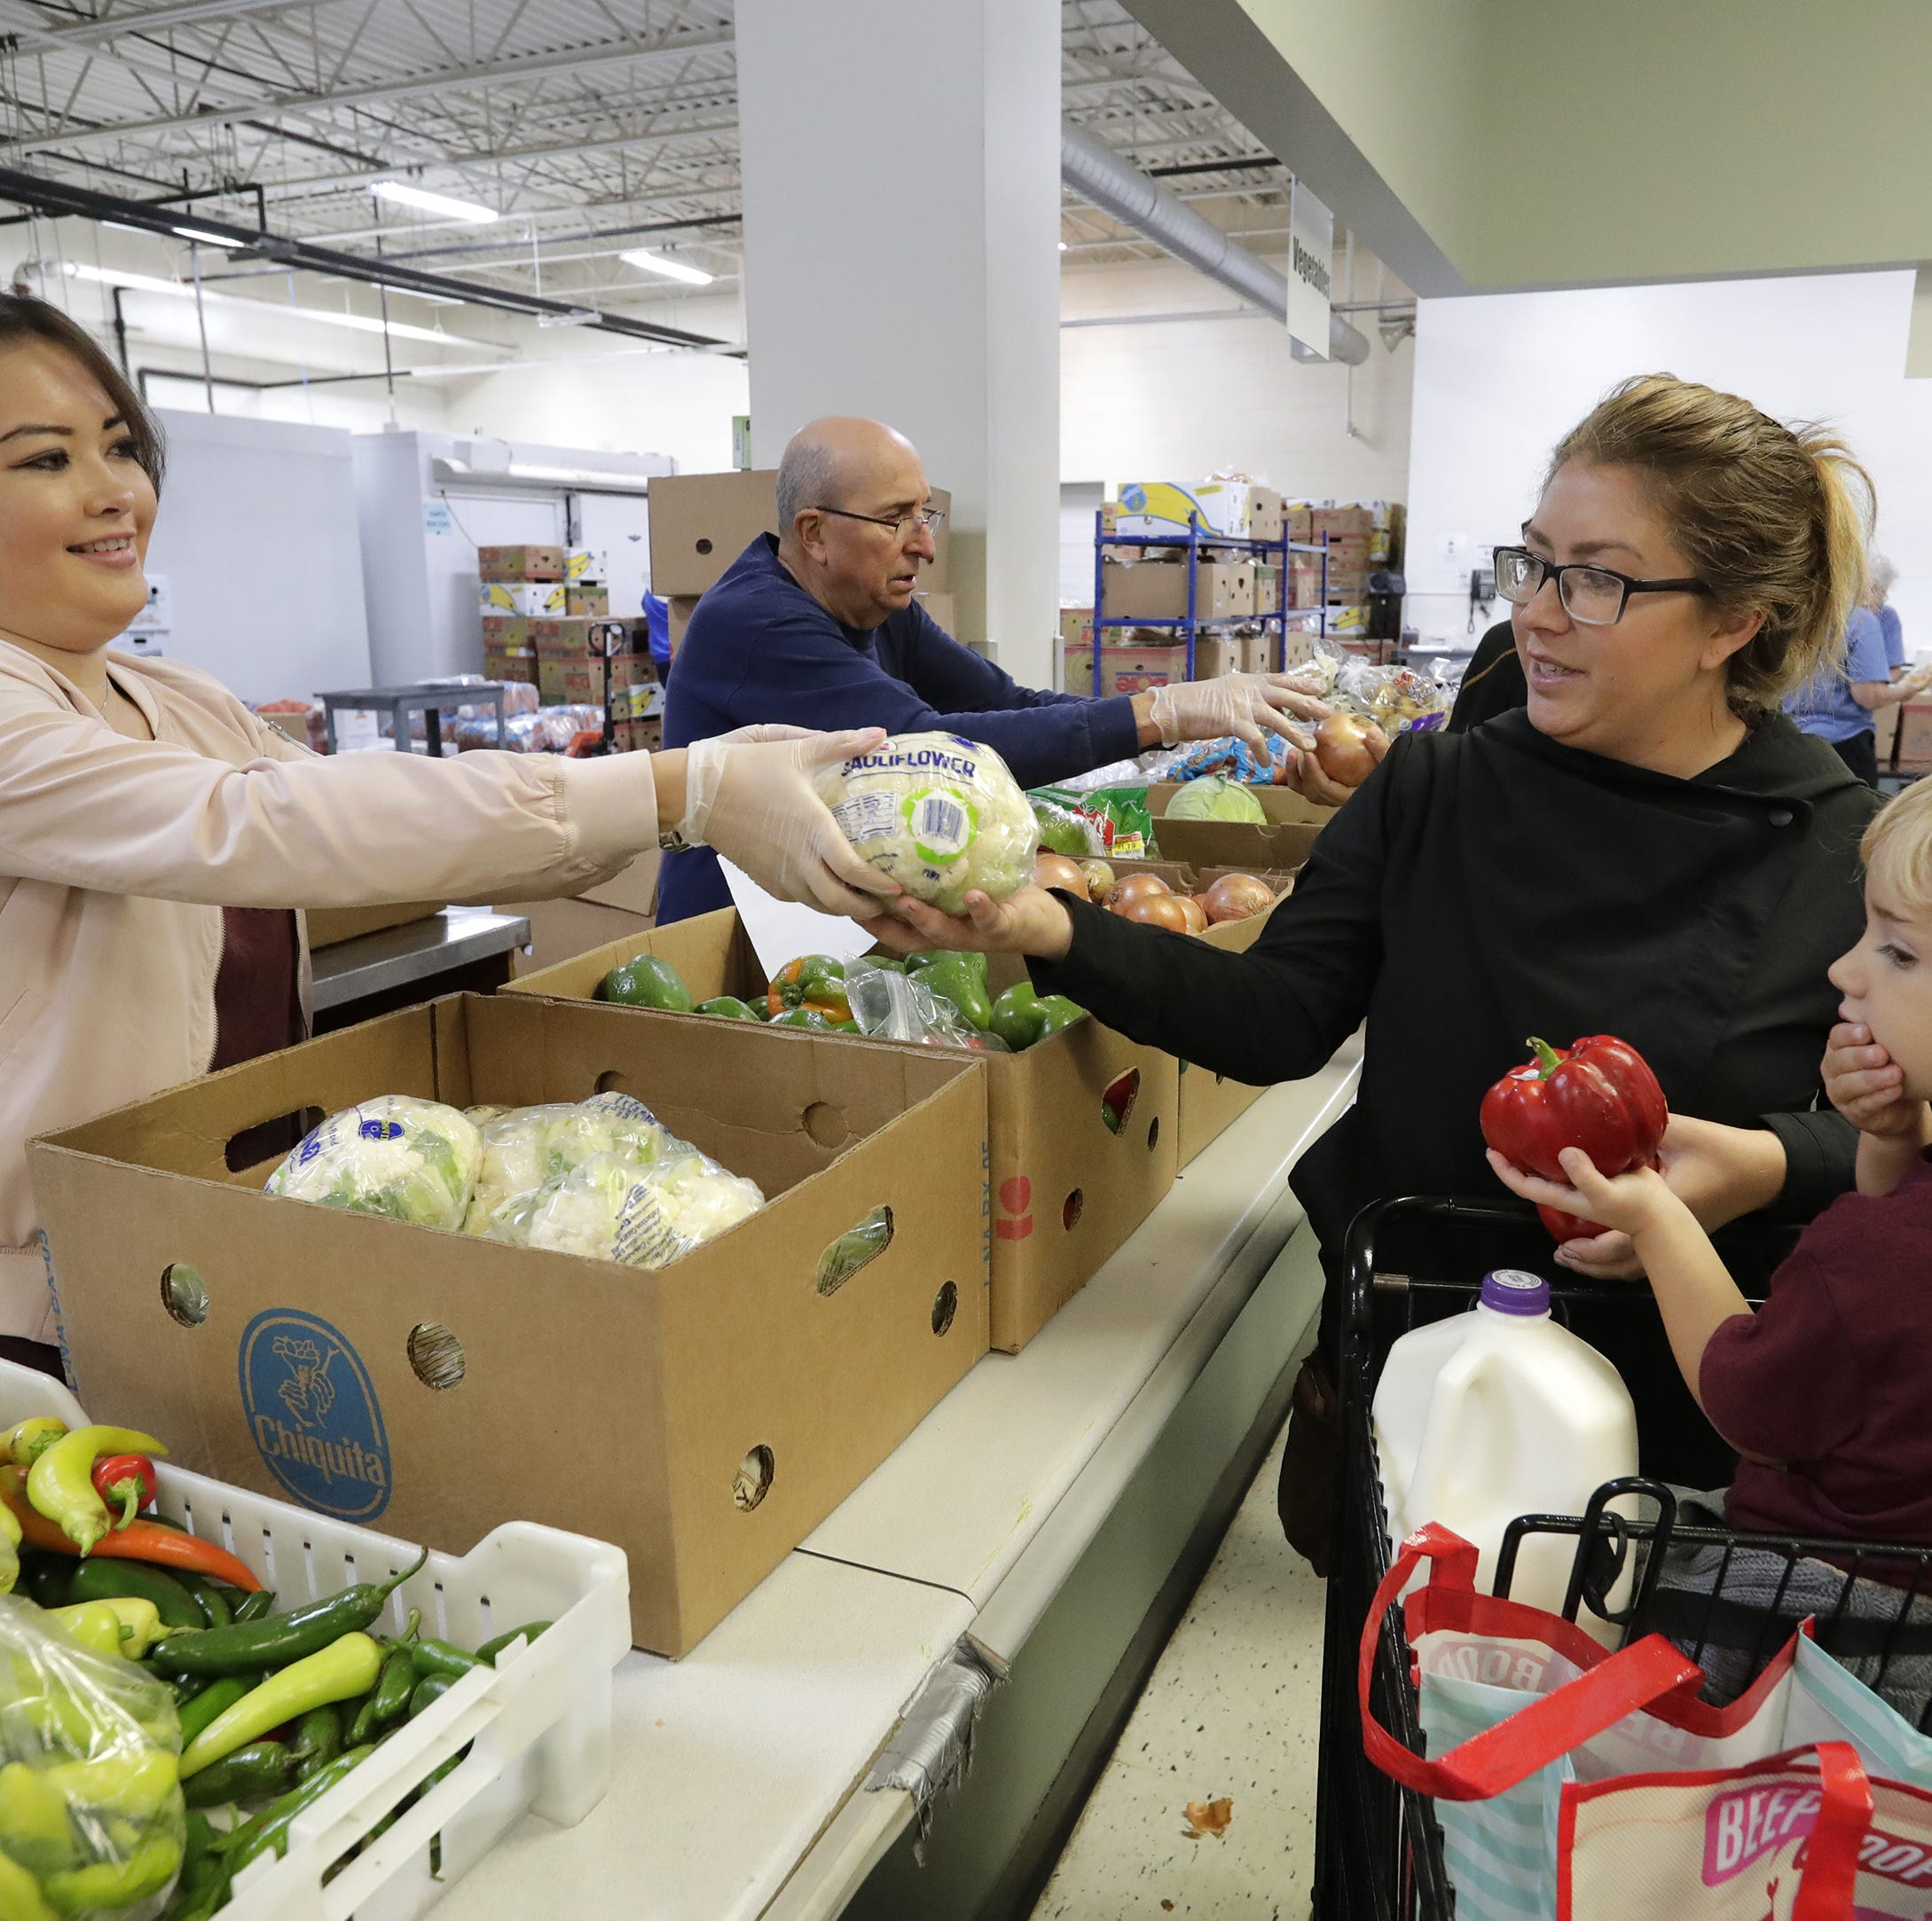 At St. Joseph Food Program, we see another side of life